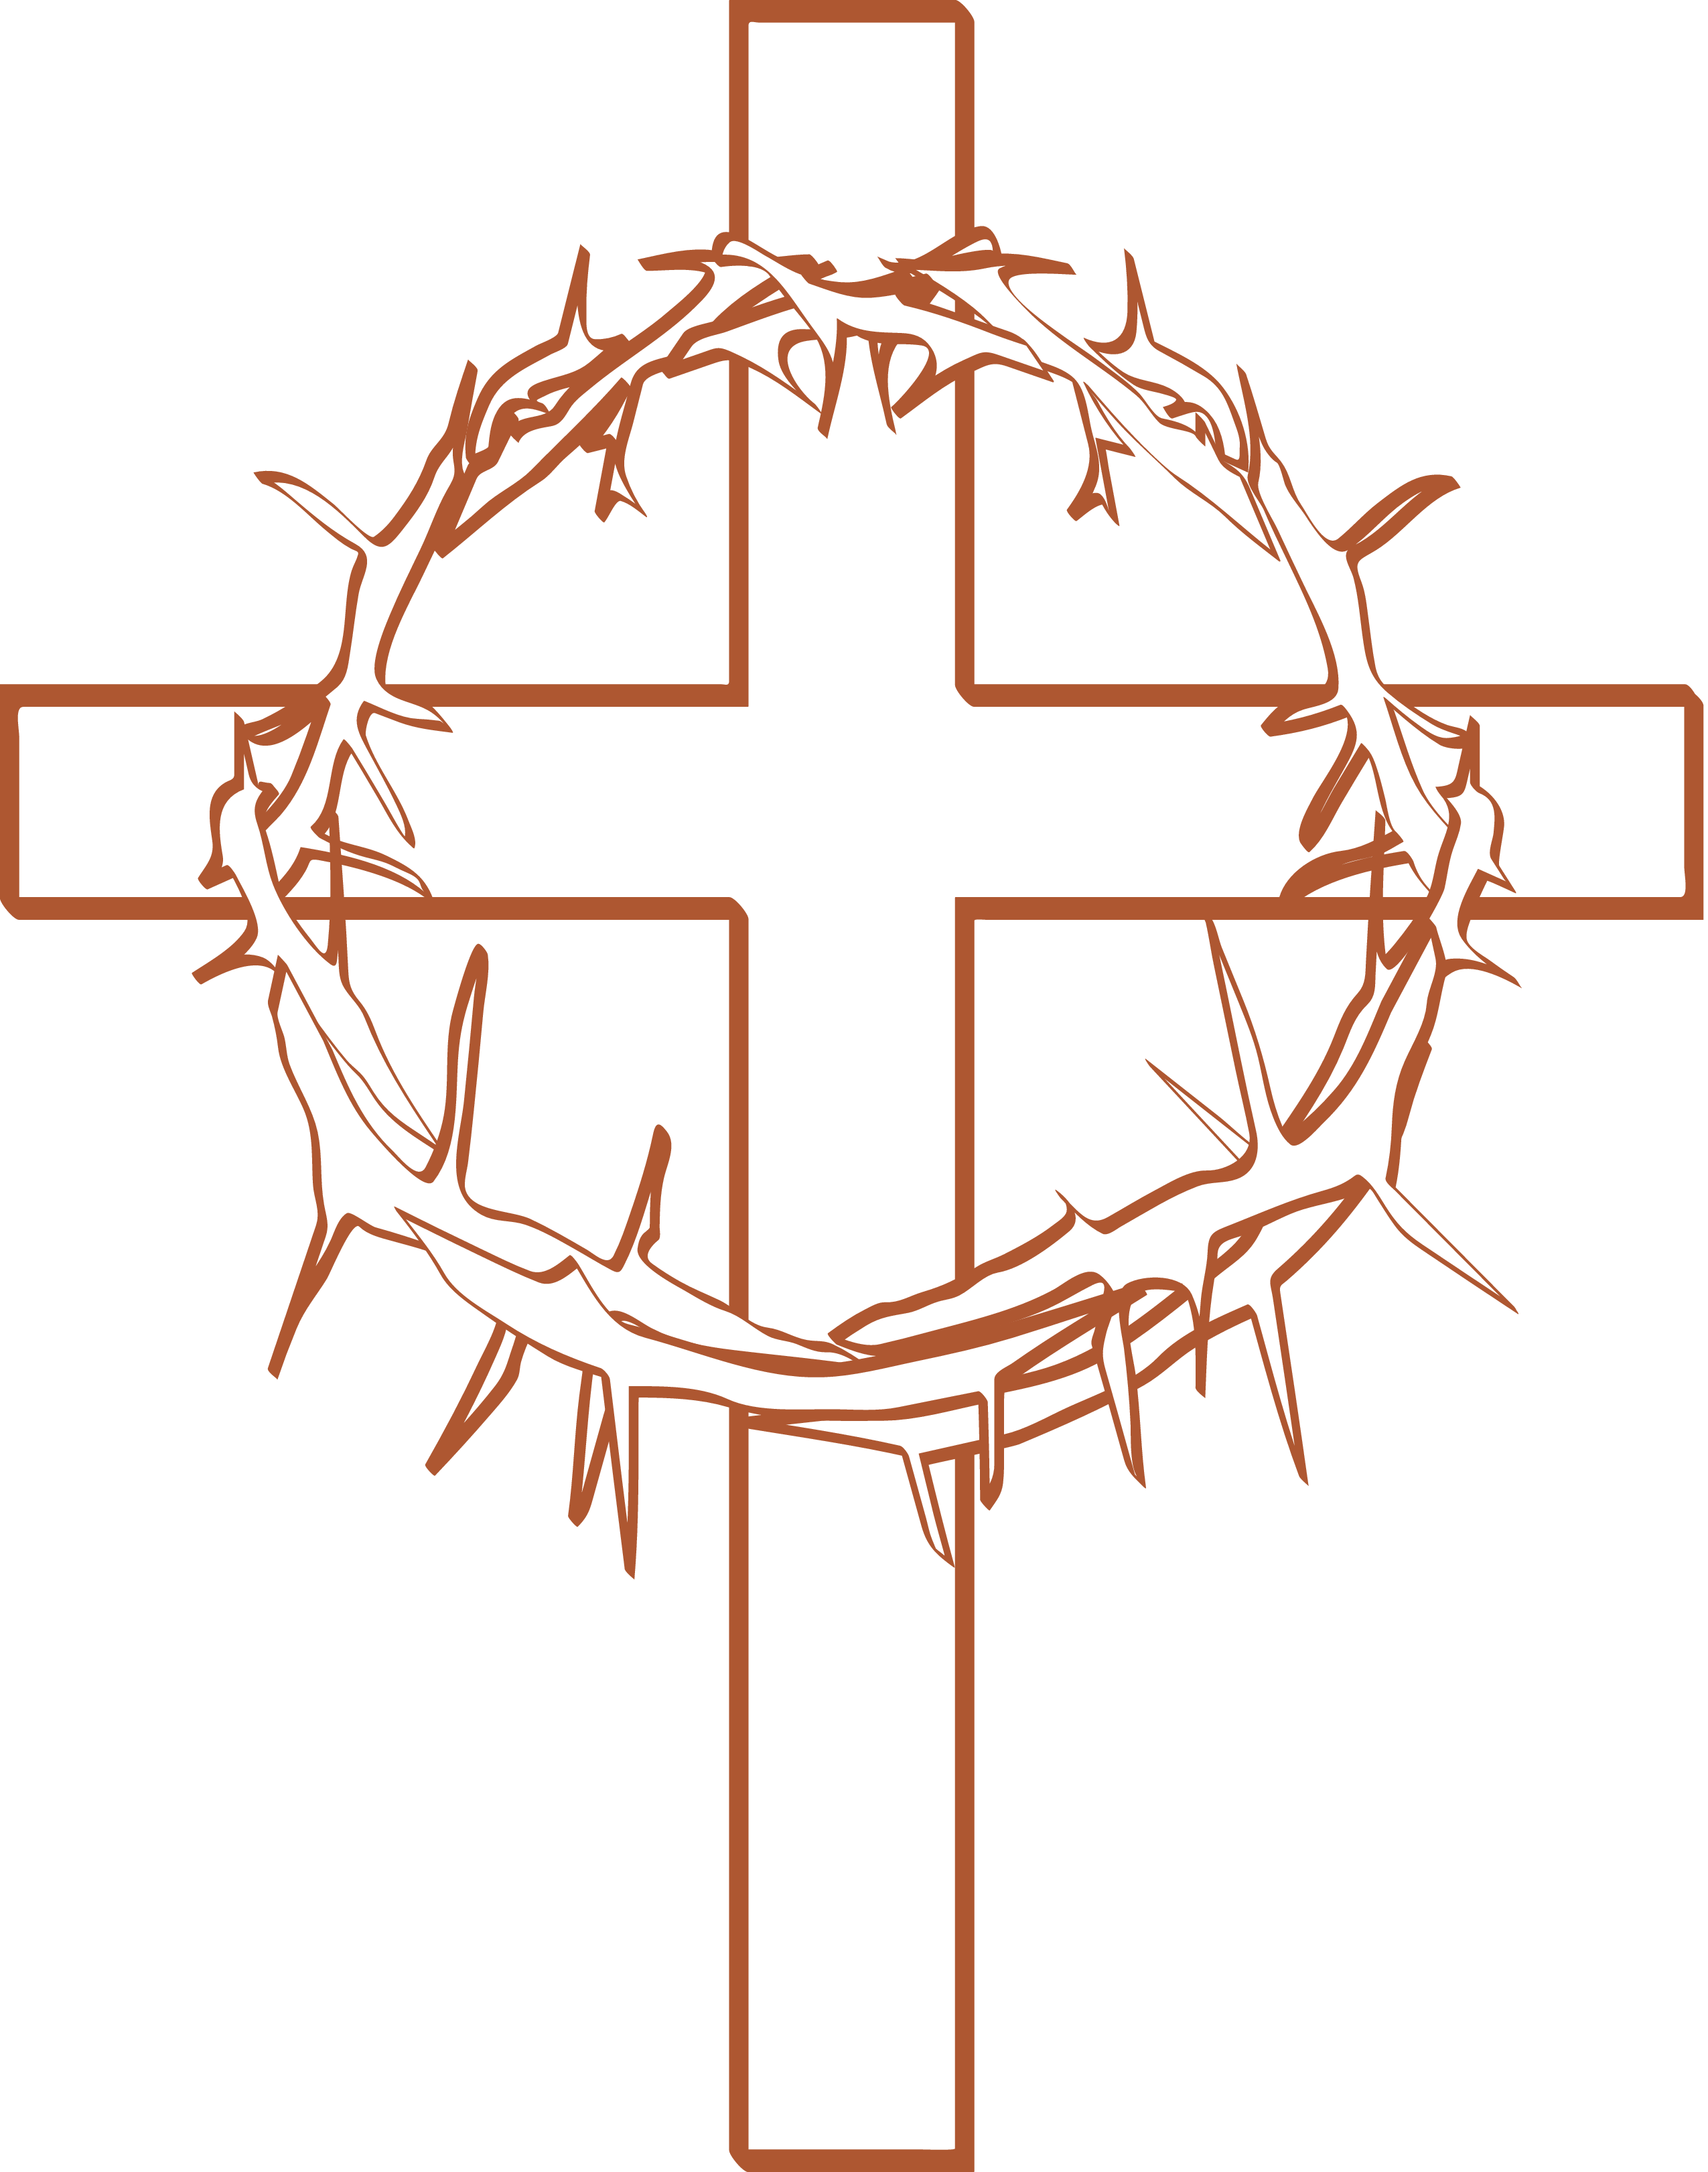 Free Thorn Crown Cliparts, Download Free Clip Art, Free Clip.